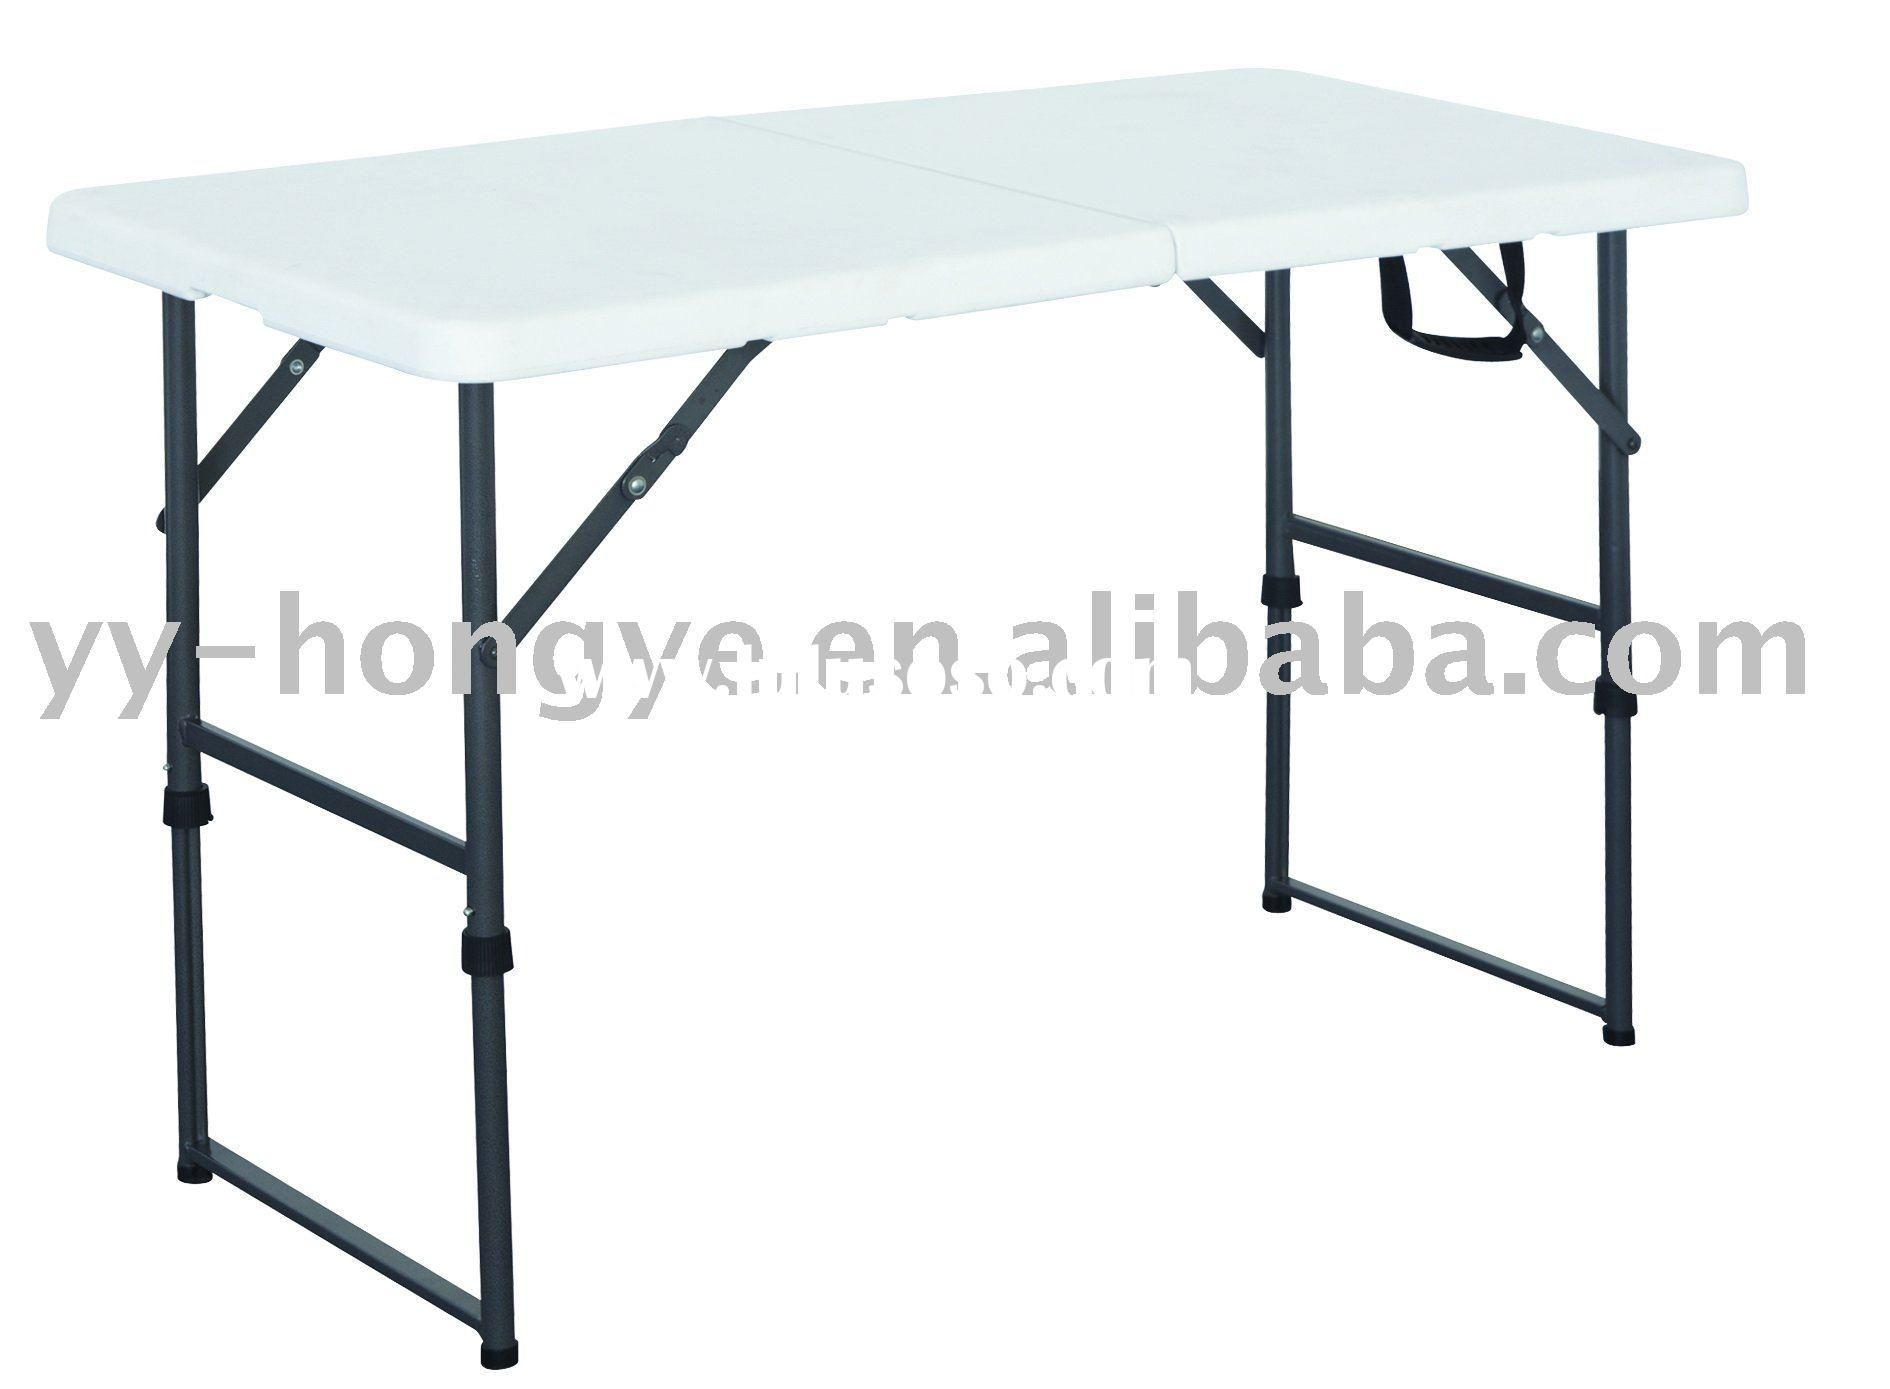 Perks And Advantages Of Small Plastic Folding Table In 2020